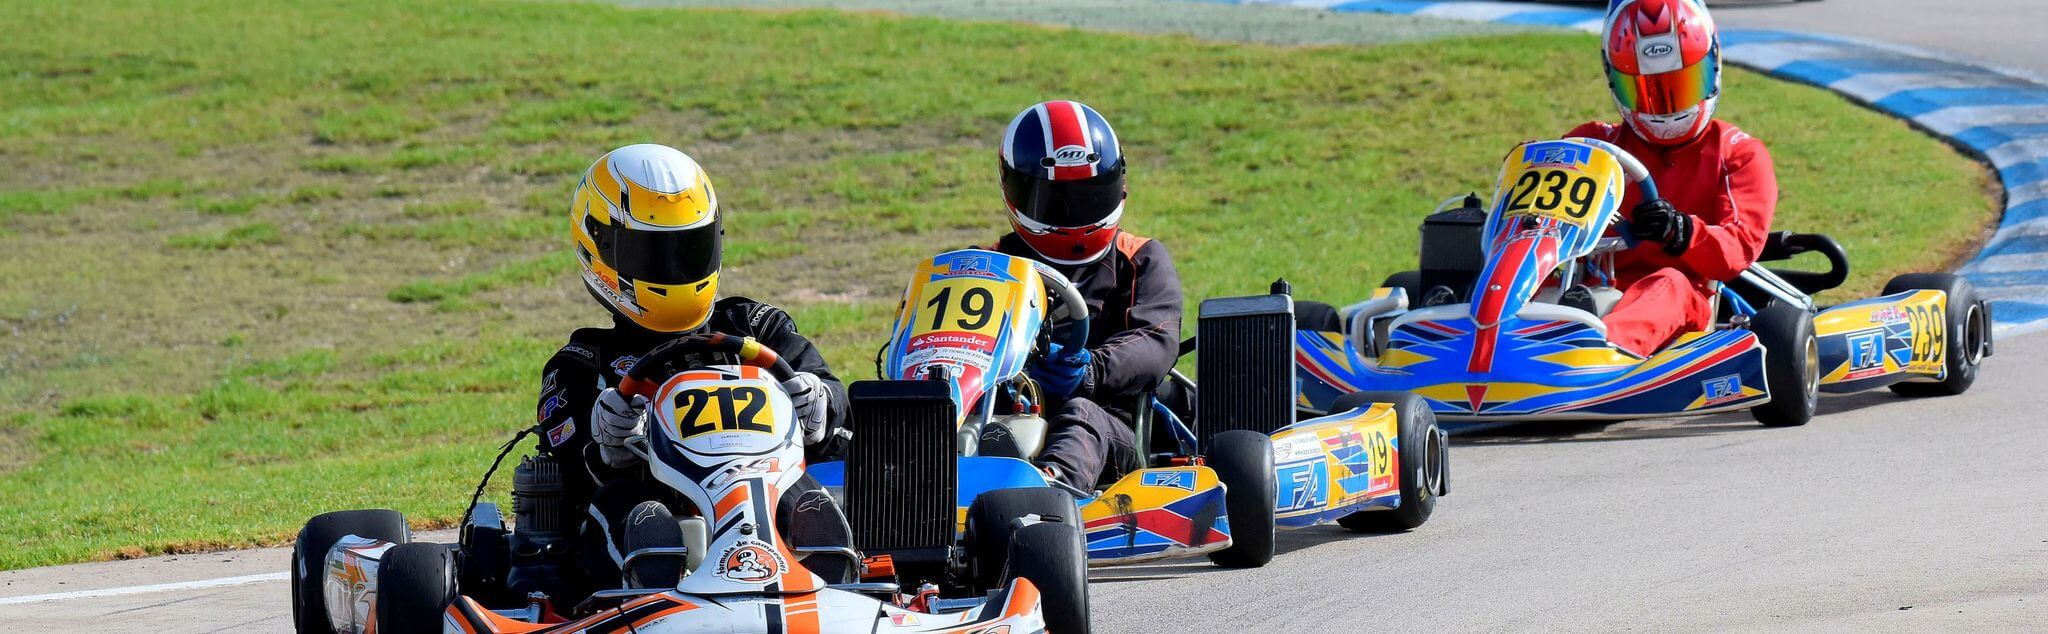 Karting en Cartaya